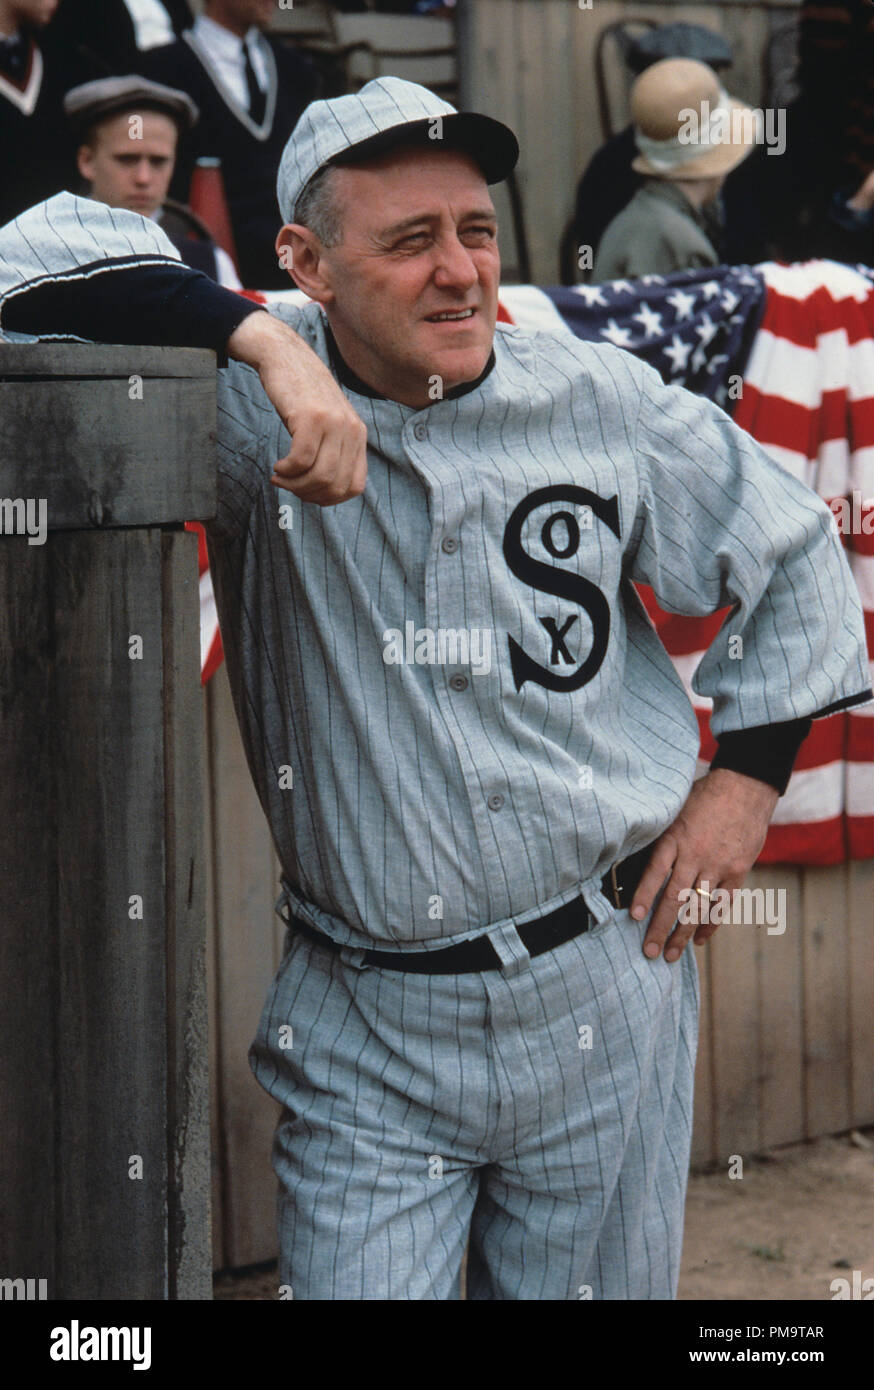 d2ae5075e Studio Publicity Still from 'Eight Men Out' John Mahoney © 1988 Orion  Pictures Photo